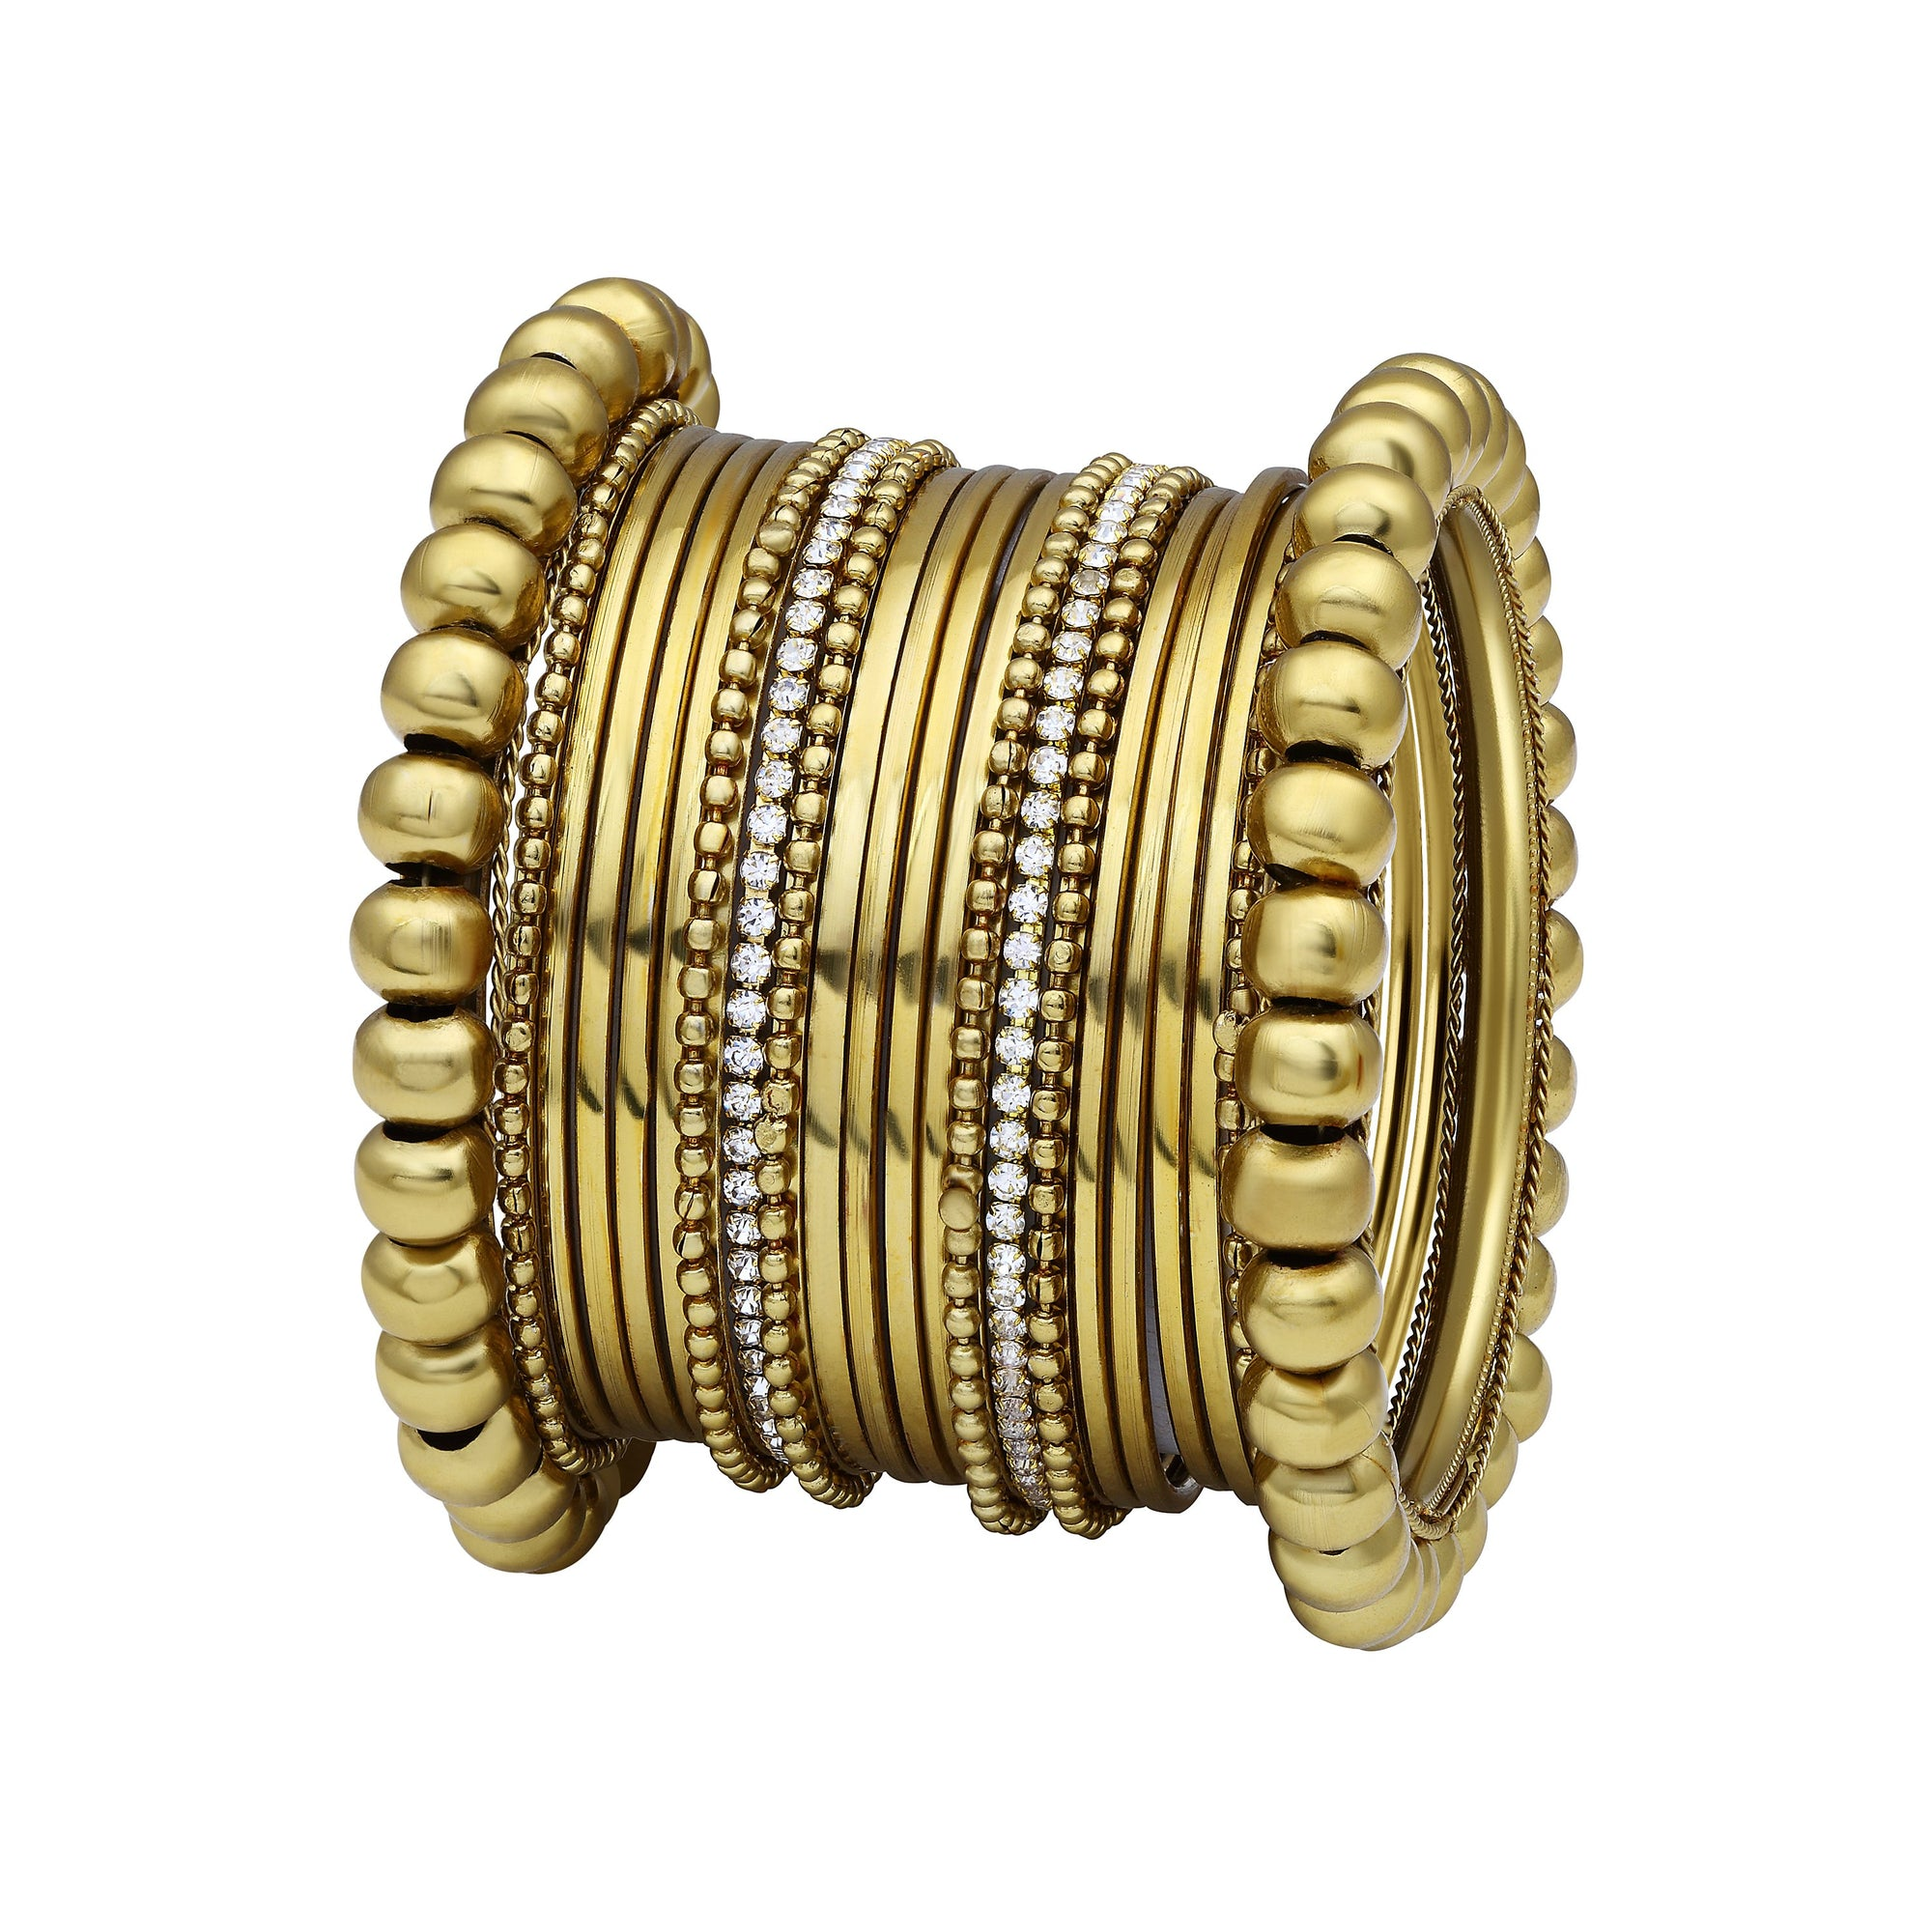 Asmitta Jewellery Gold Alloy Bangle Set -BG143